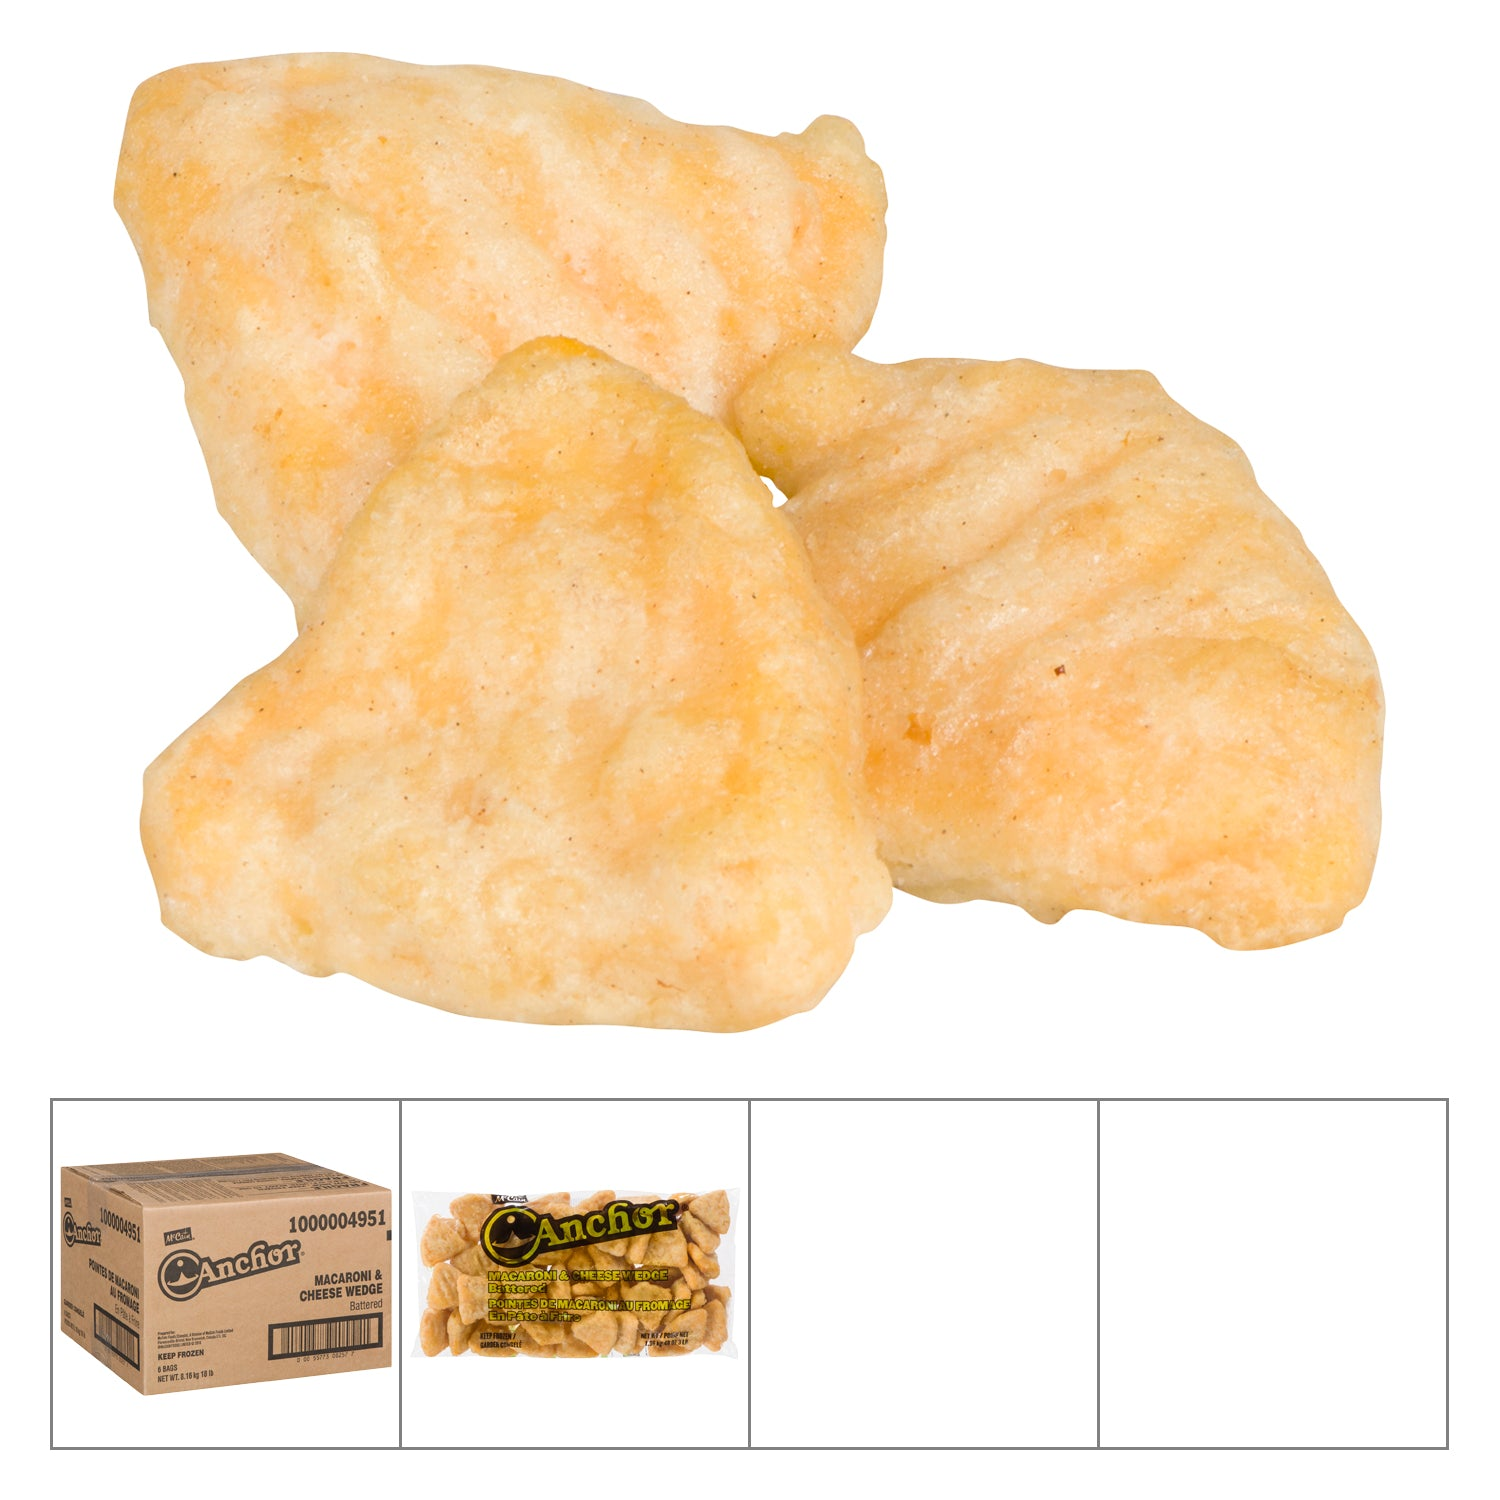 Anchor Frozen Macaroni and Cheese Stuffed Wedge Bites 3 lb - 6 Pack [$5.89/lb]